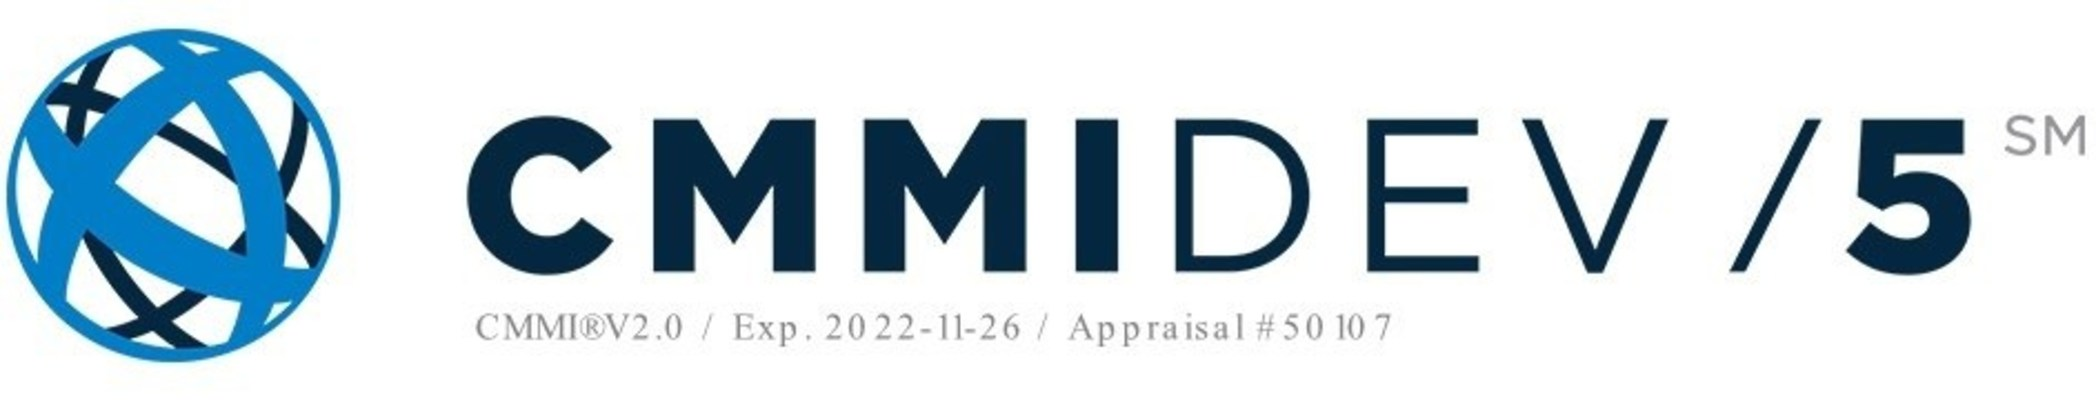 Dynanet Re-Appraised at CMMI-DEV Maturity Level 5 in World's First Sustainment Appraisal